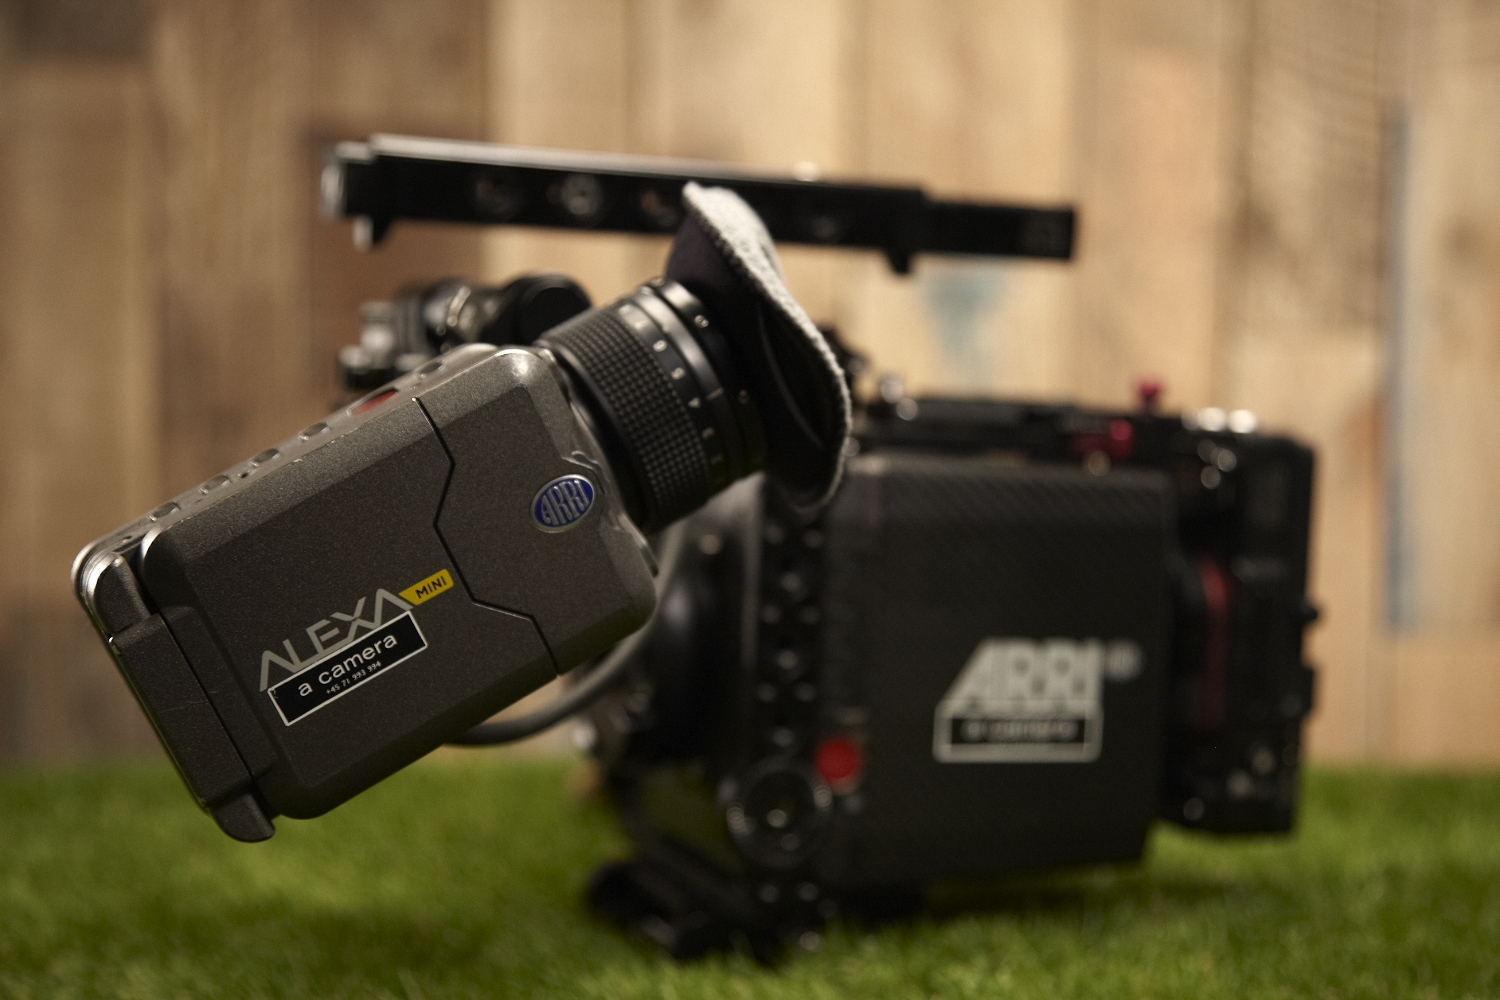 Arri Alexa Mini    Resolution:  UHD 3.8K - 3.2K - 2.8K ana - 2K - HD   Codecs:  RAW - Prores4444XQ - Prores4444 - Proress422   Framerate:  Up to 200 Fps depending on resolution and codec selection.